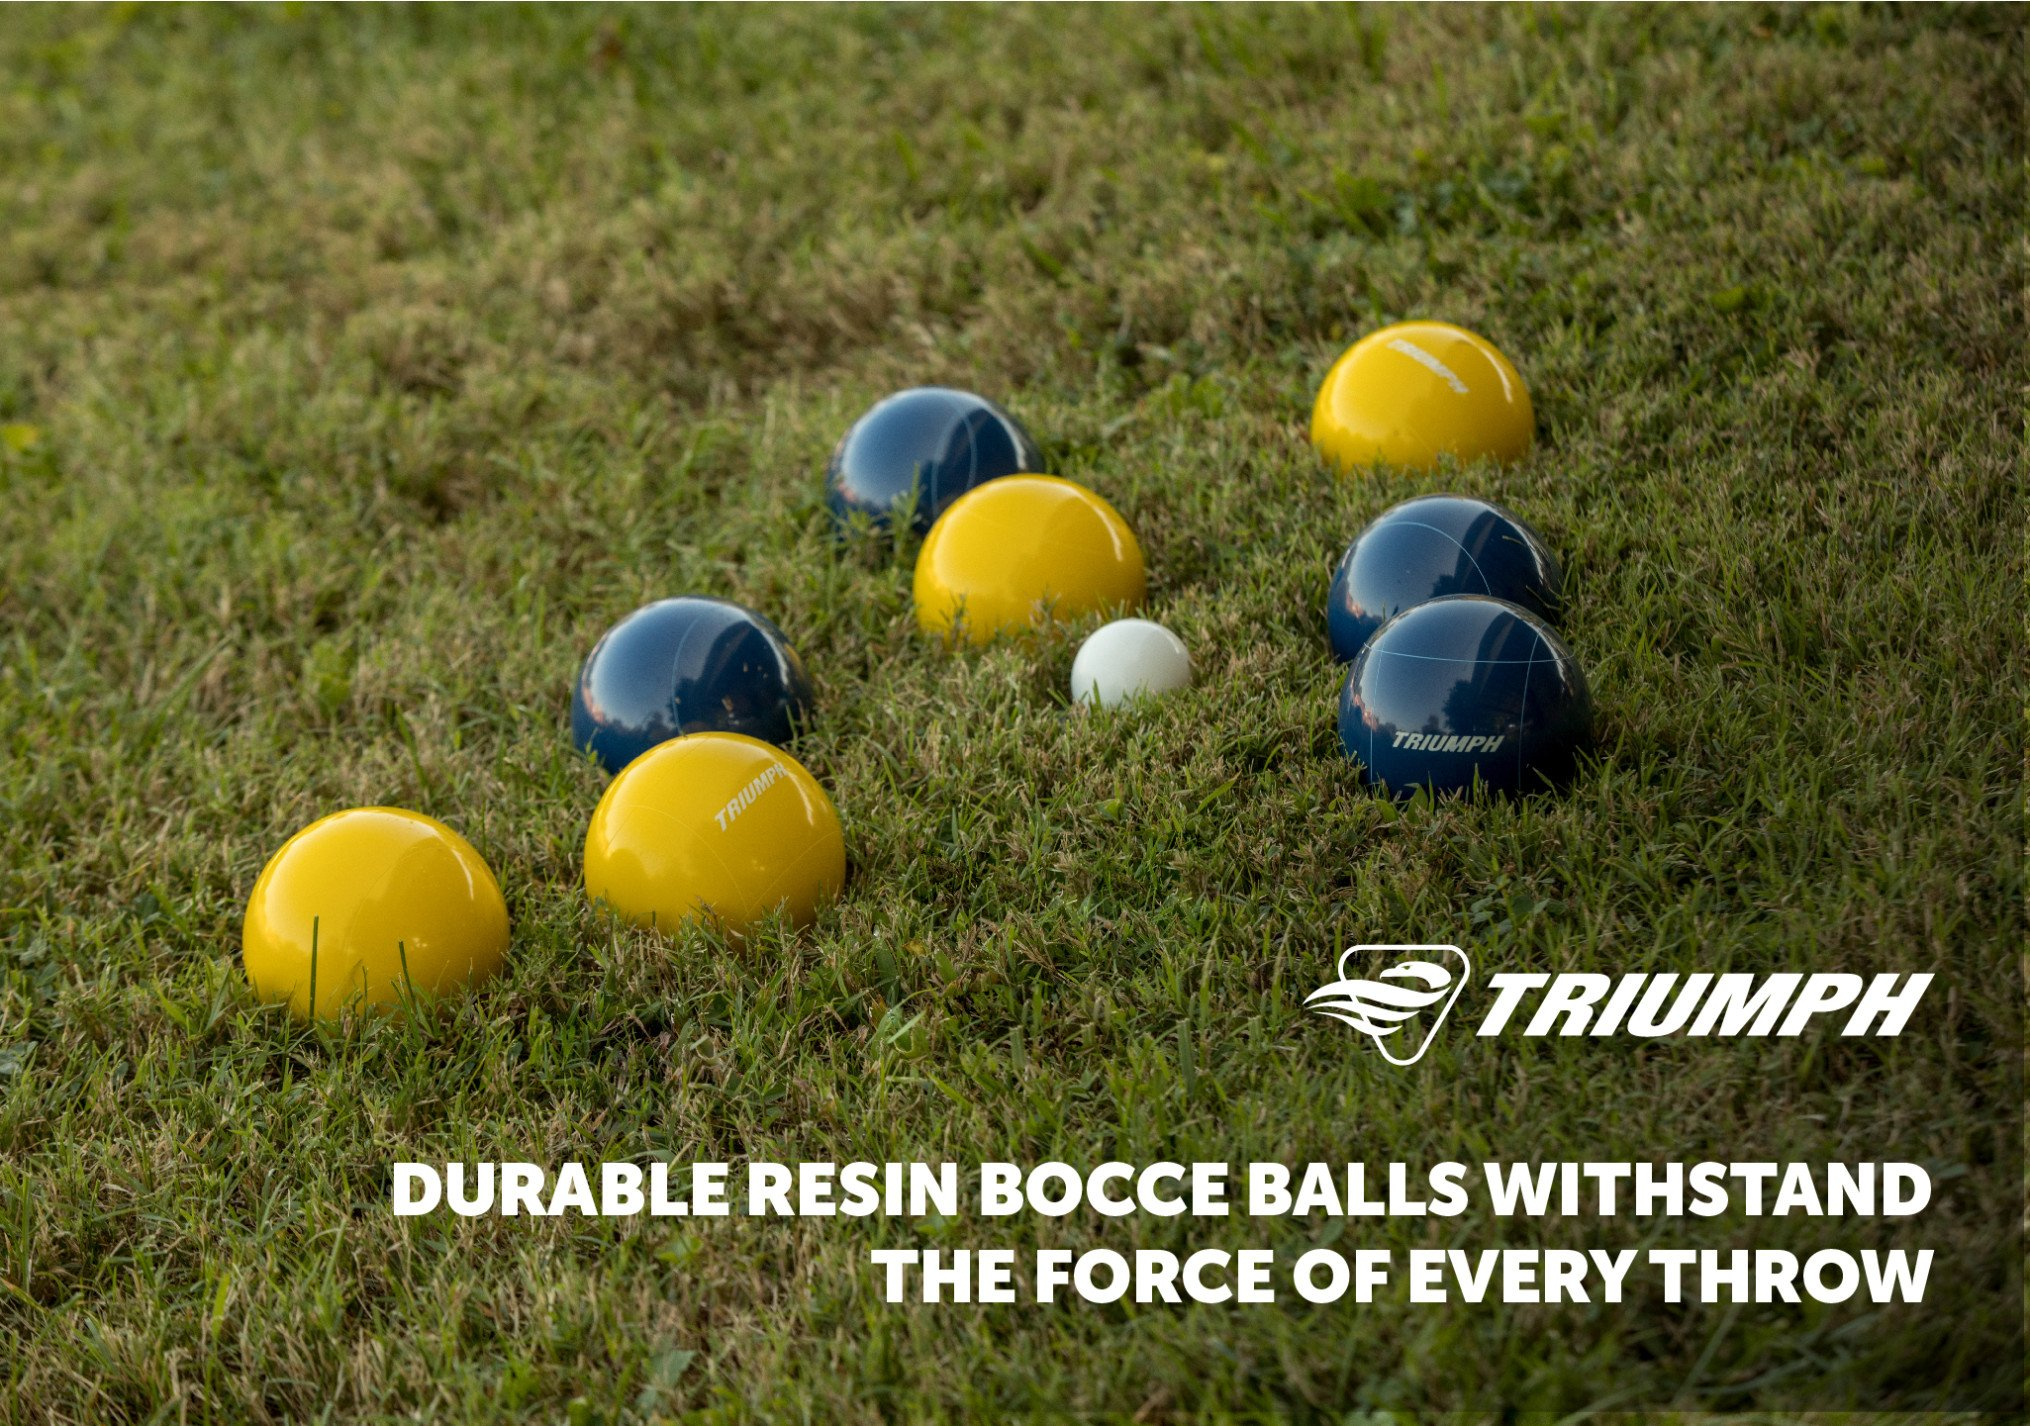 Triumph All Pro 100mm Bocce Set Includes Eight Bocce Balls, One 50mm Jack, and Carry Bag by Triumph Sports (Image #5)